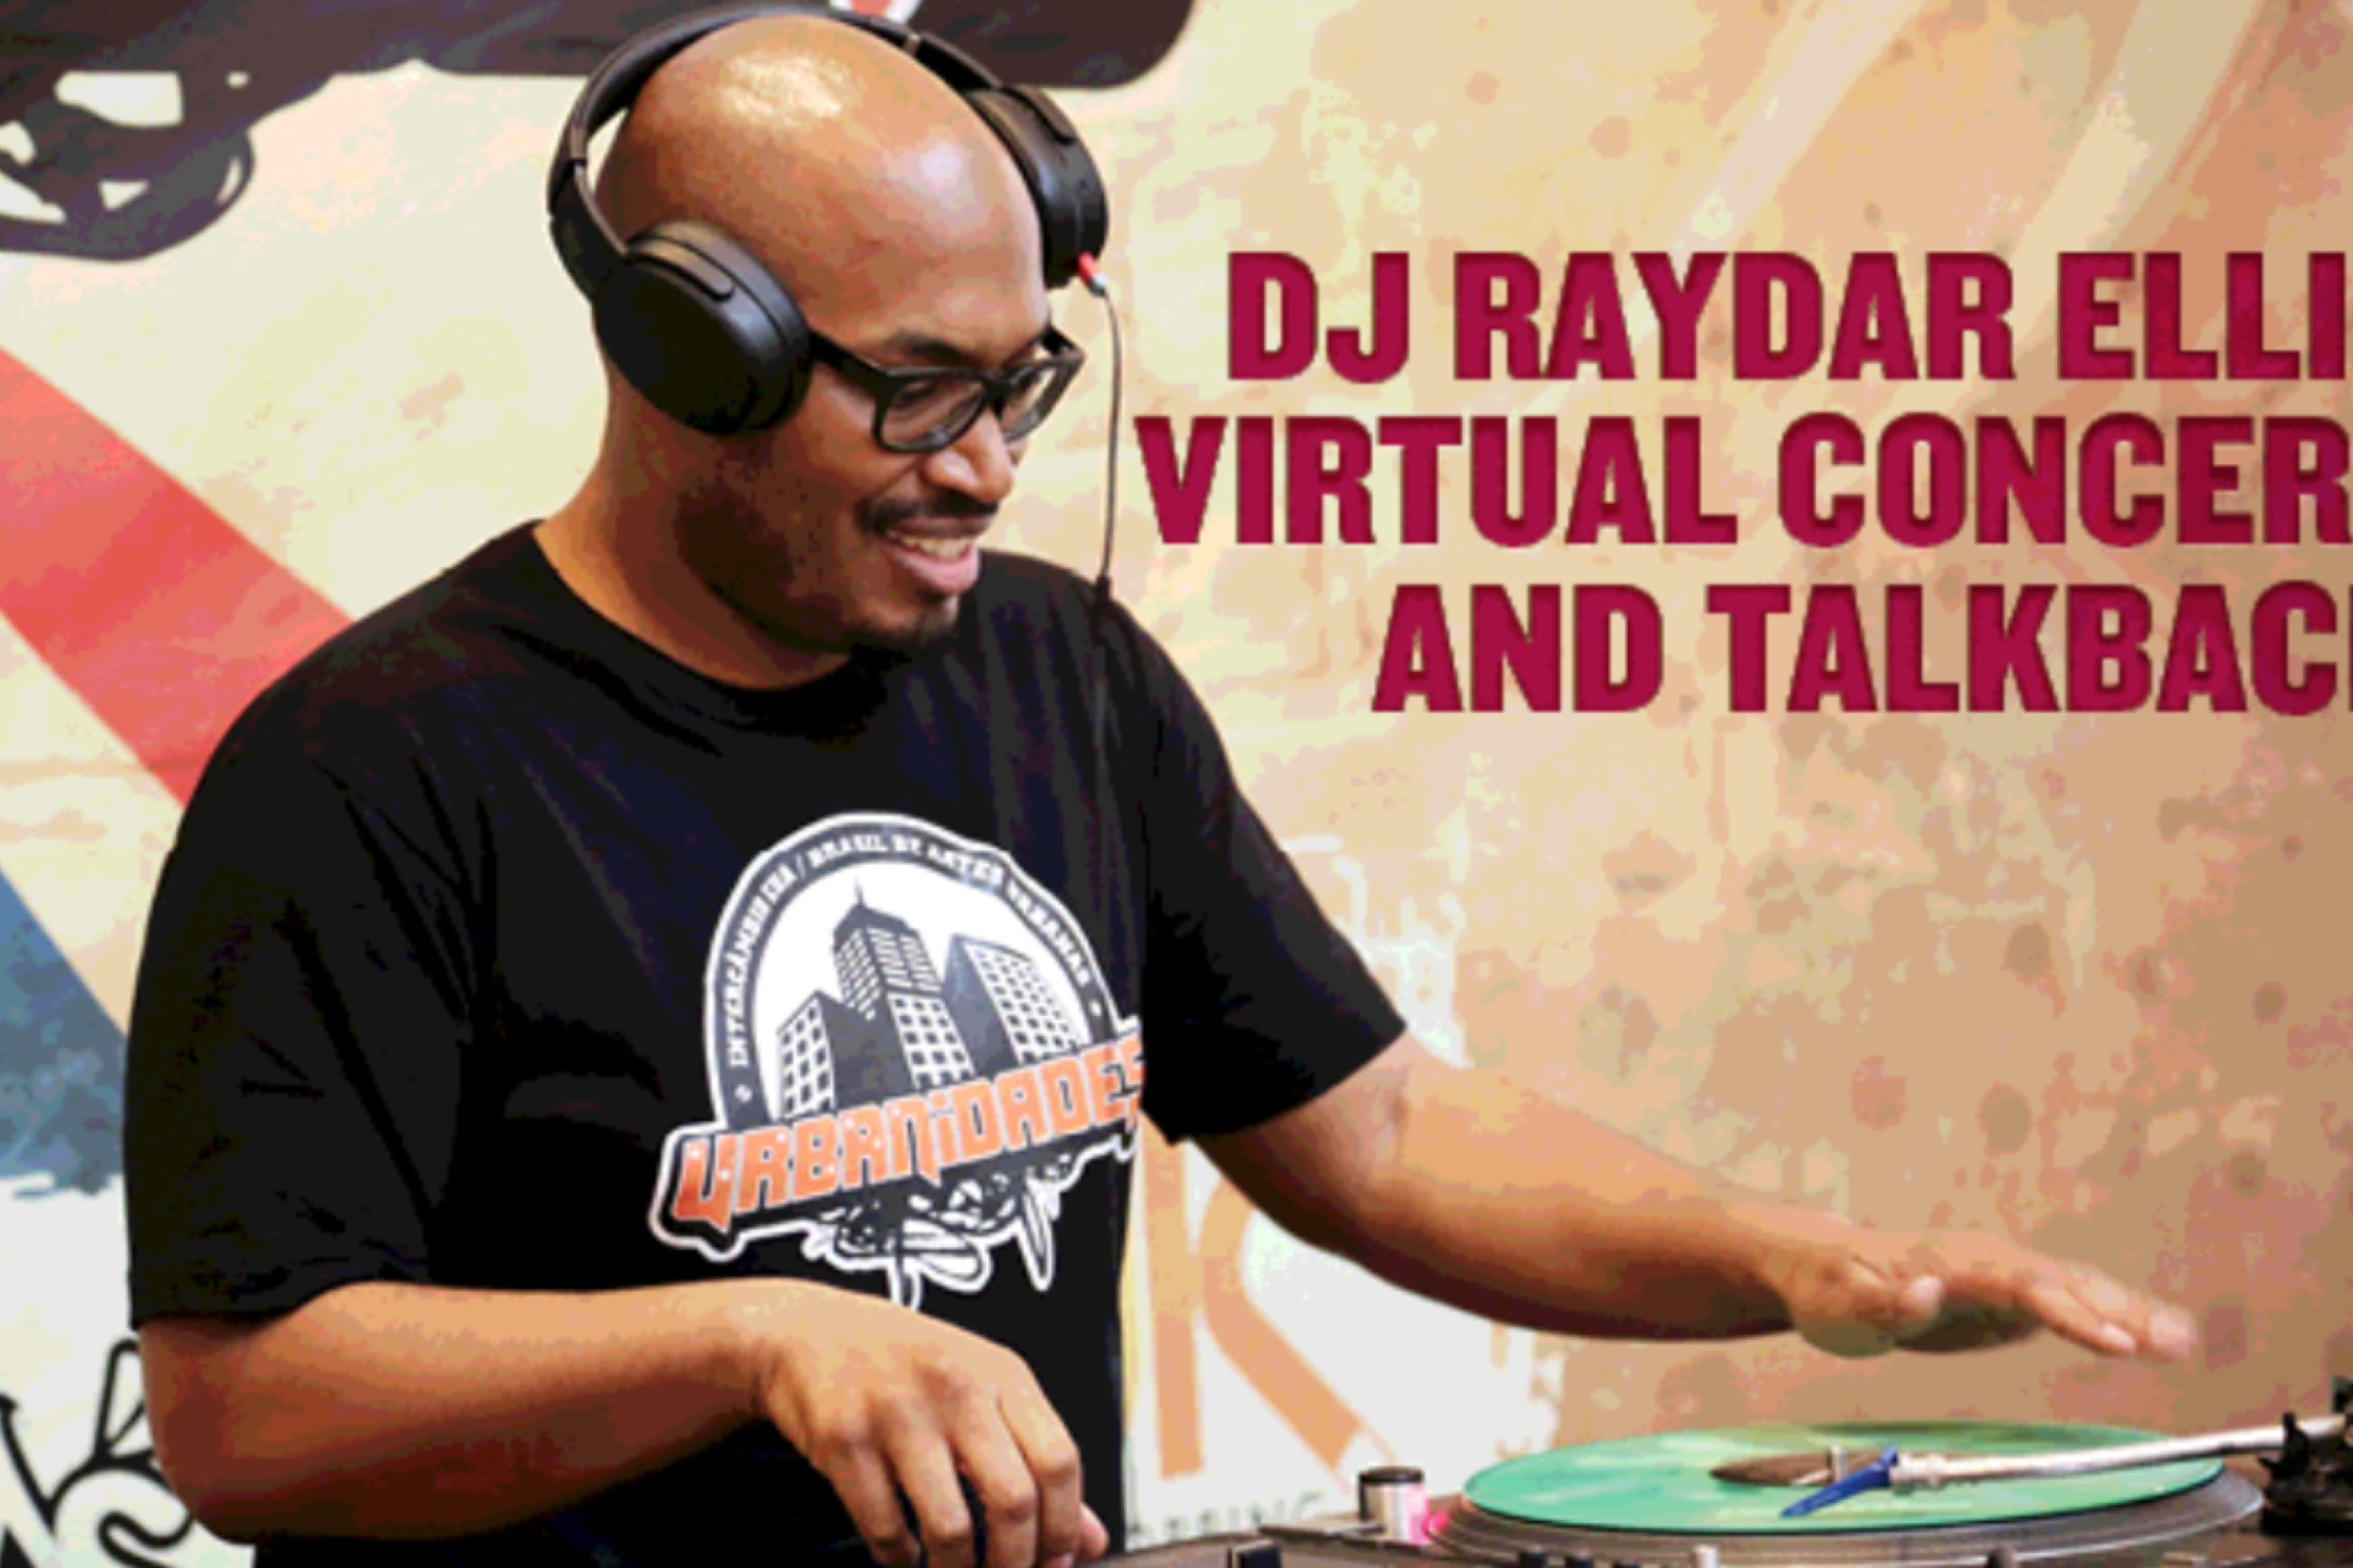 Virtual Music Events featuring DJ Raydar Ellis